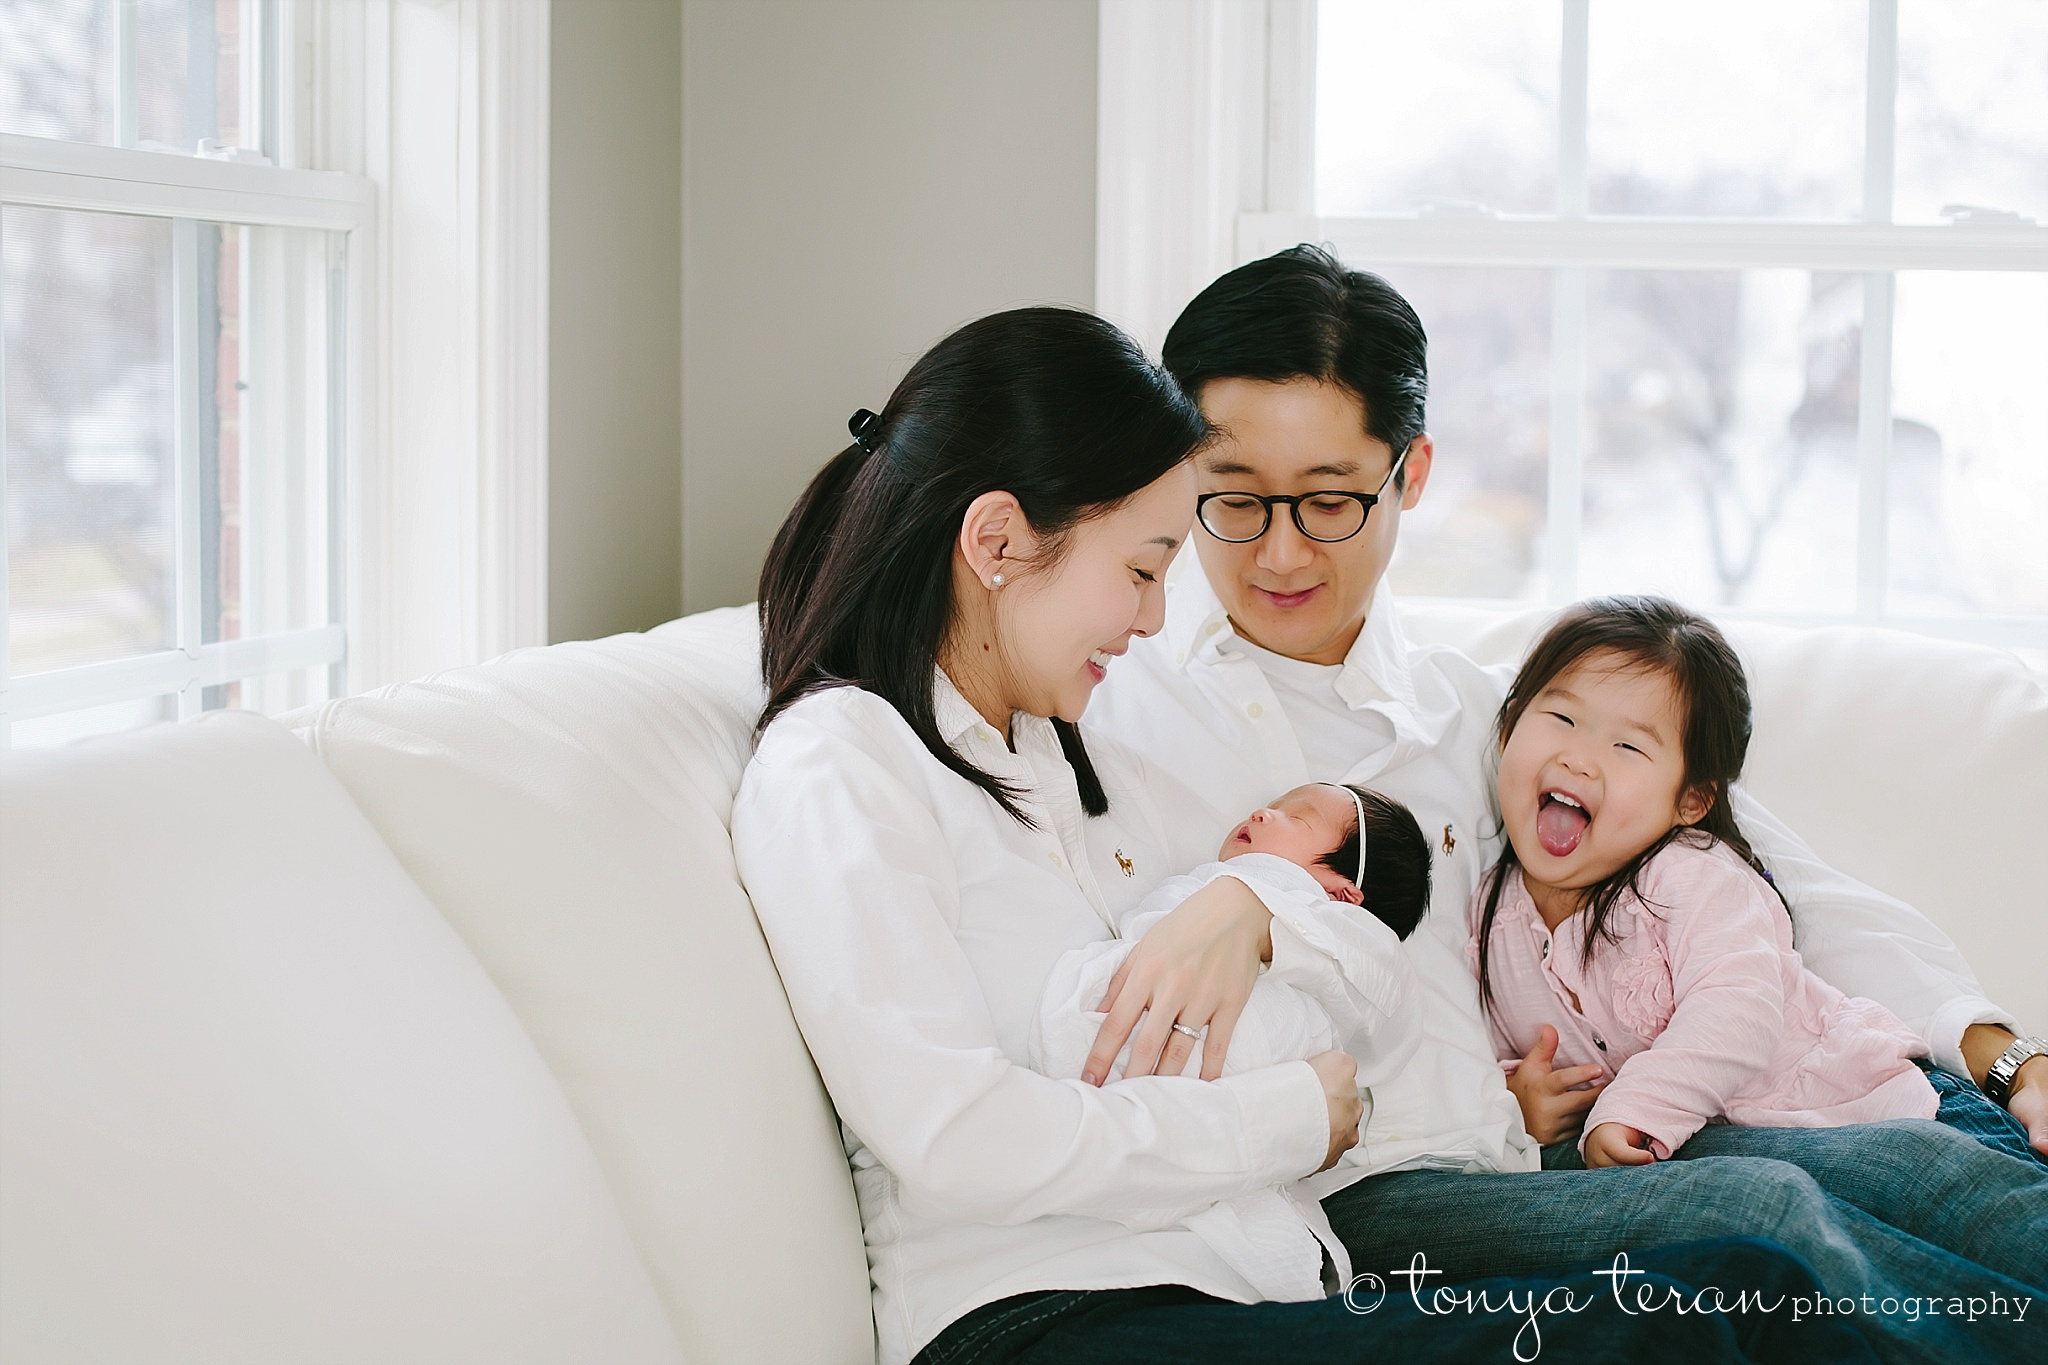 Lifestyle Family Newborn Photo Session | Tonya Teran Photography, Gaithersburg, MD Newborn, Baby, and Family Photographer